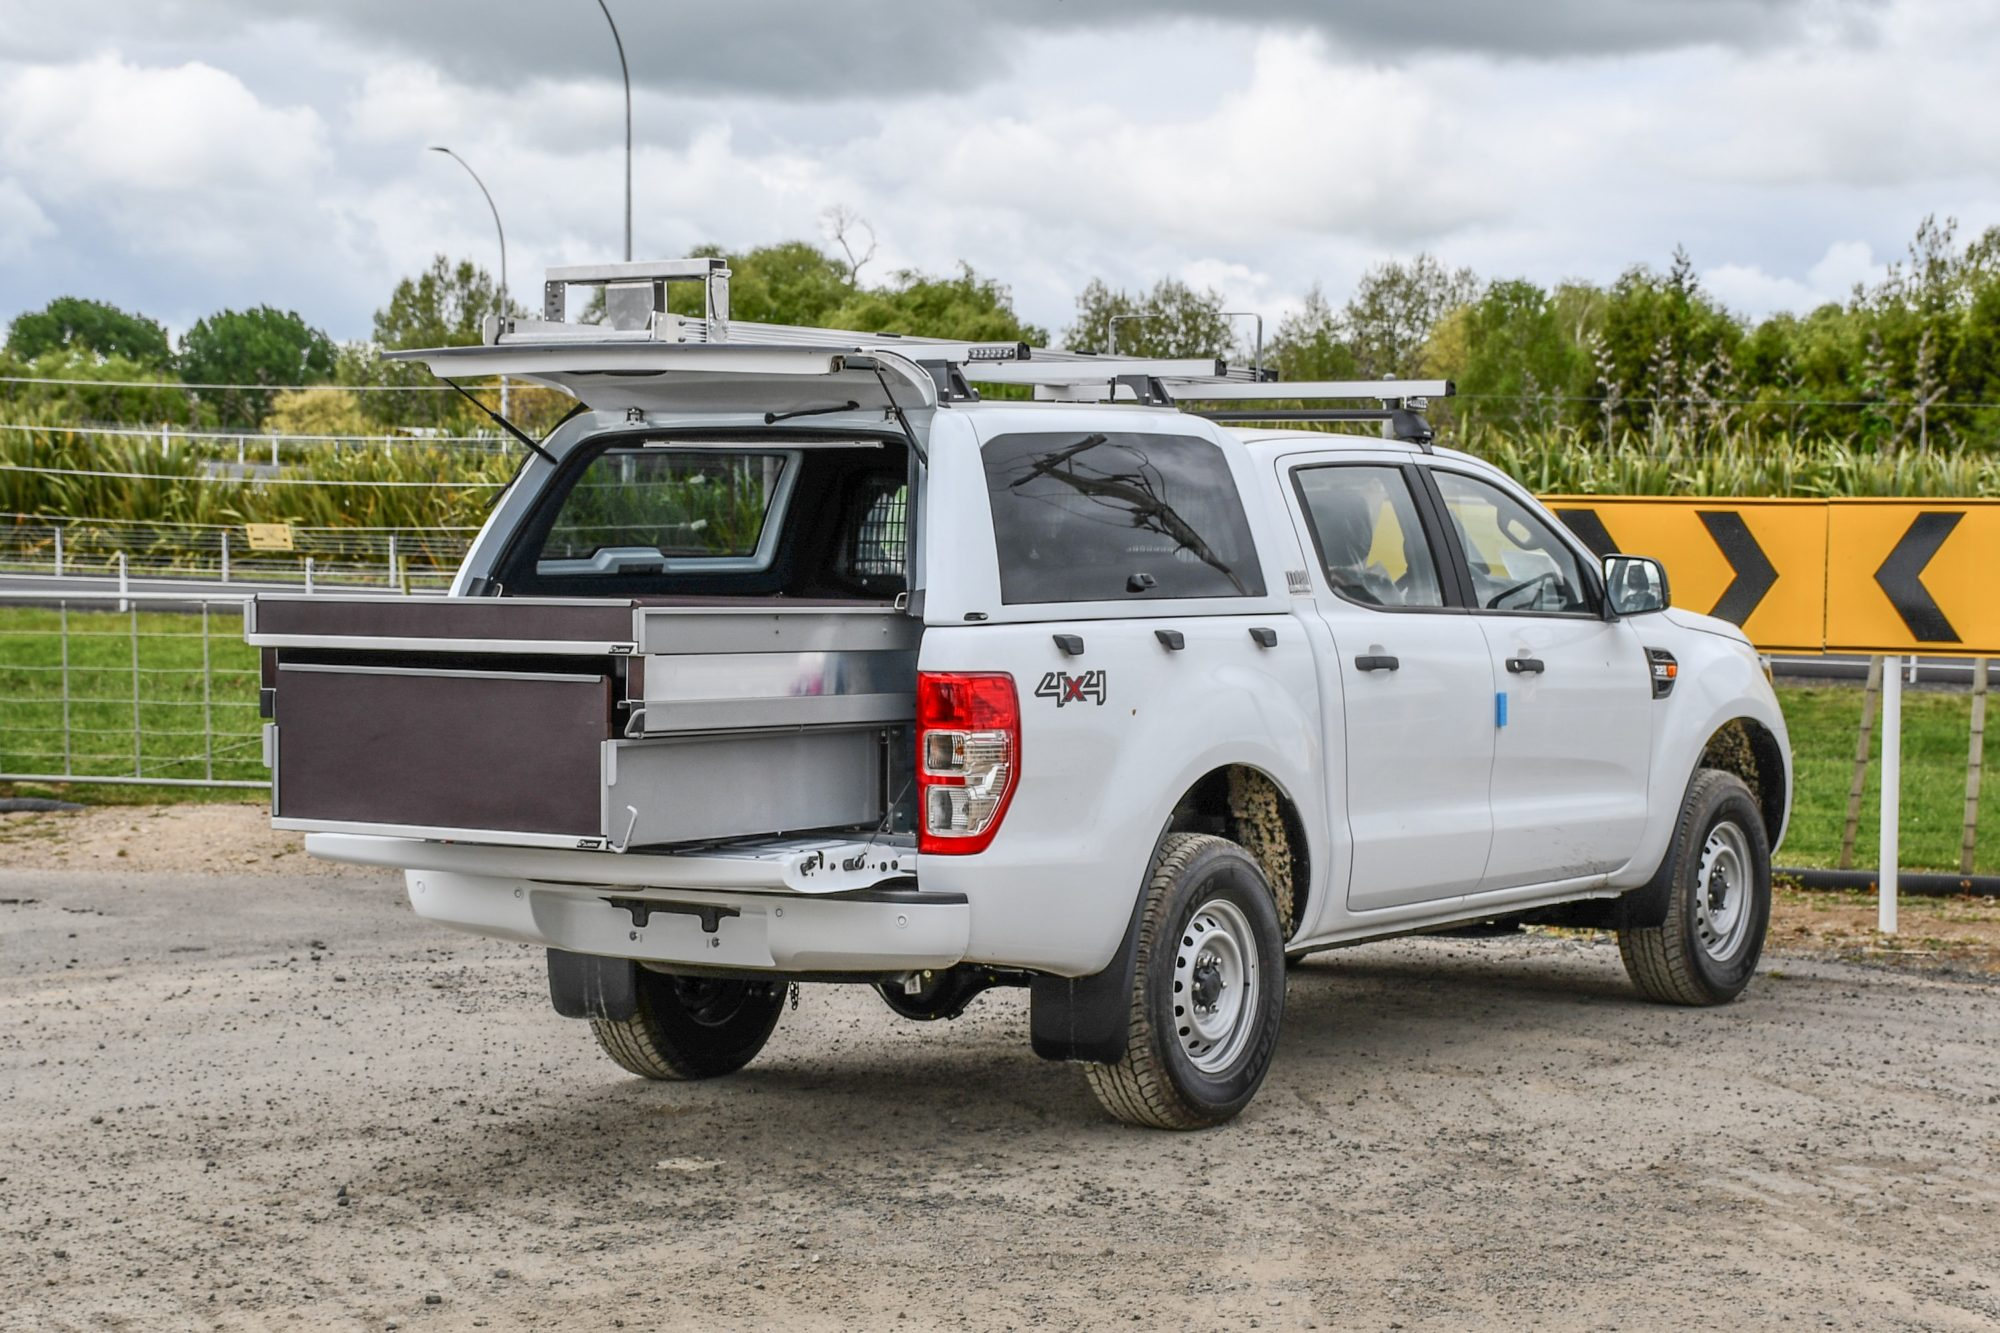 Ford Ranger Arborists Fitout